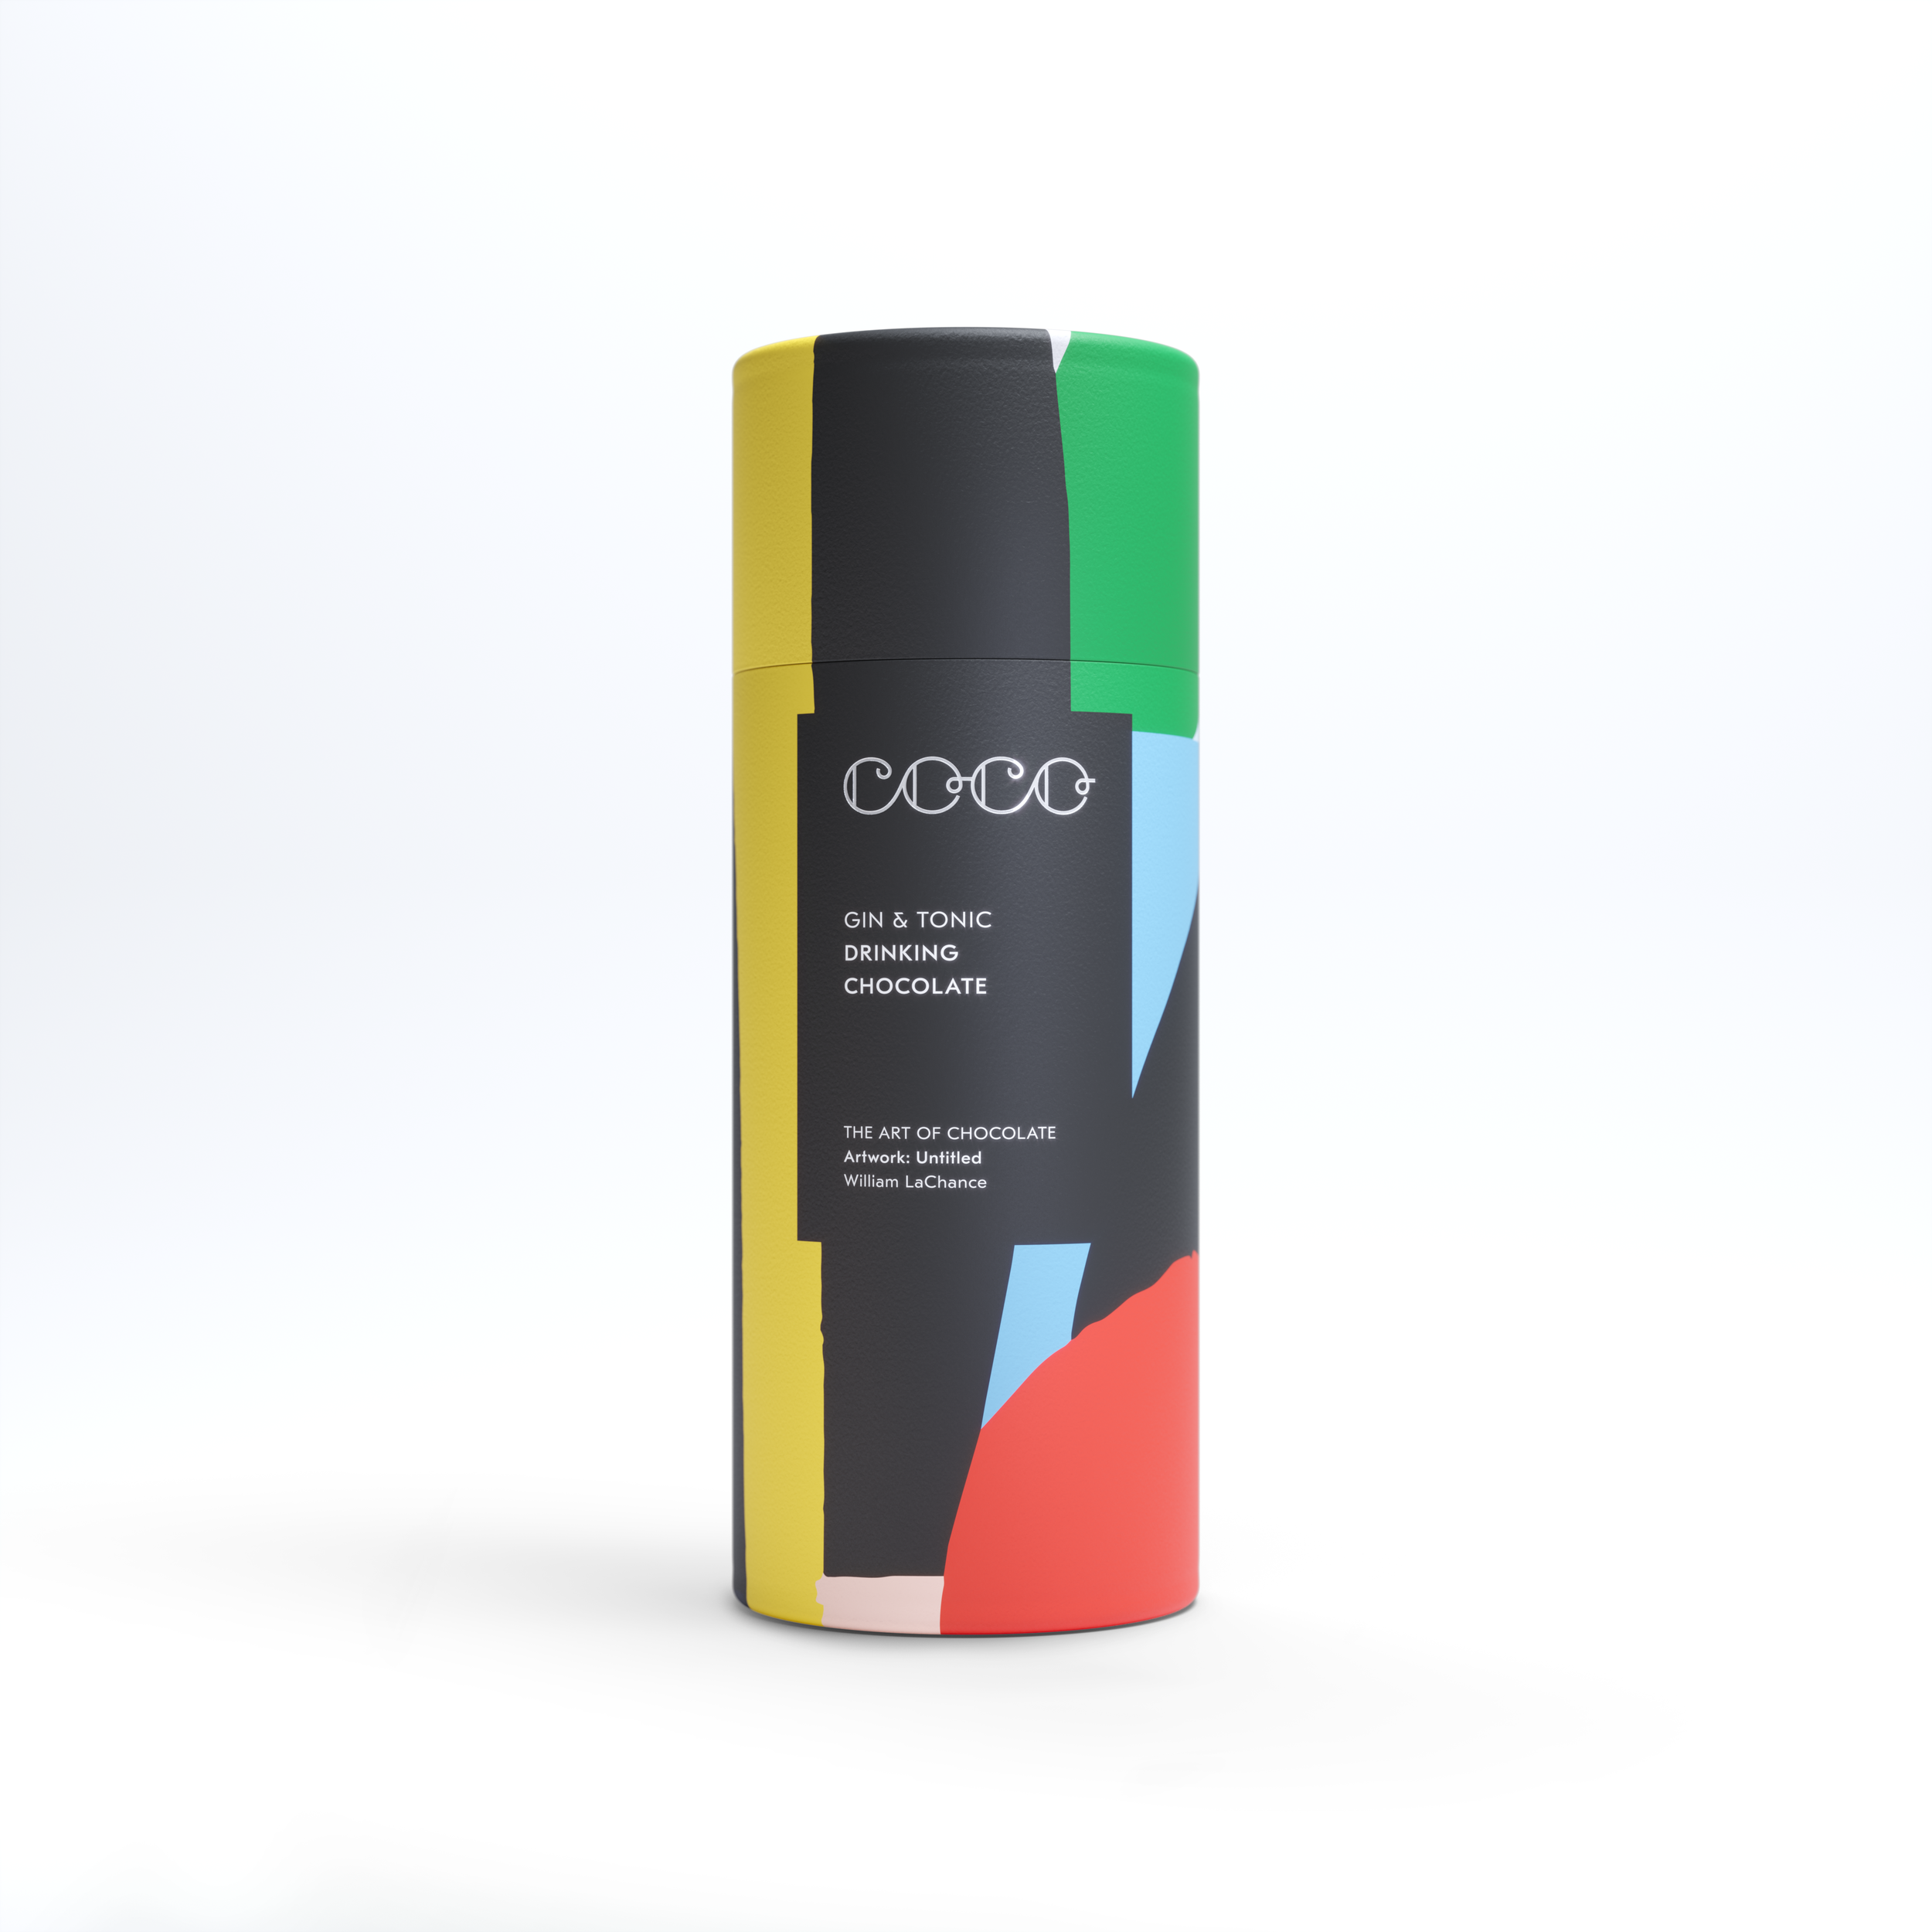 COCO Drinking Chocolate Tubes Packaging Design / World Brand & Packaging Design Society